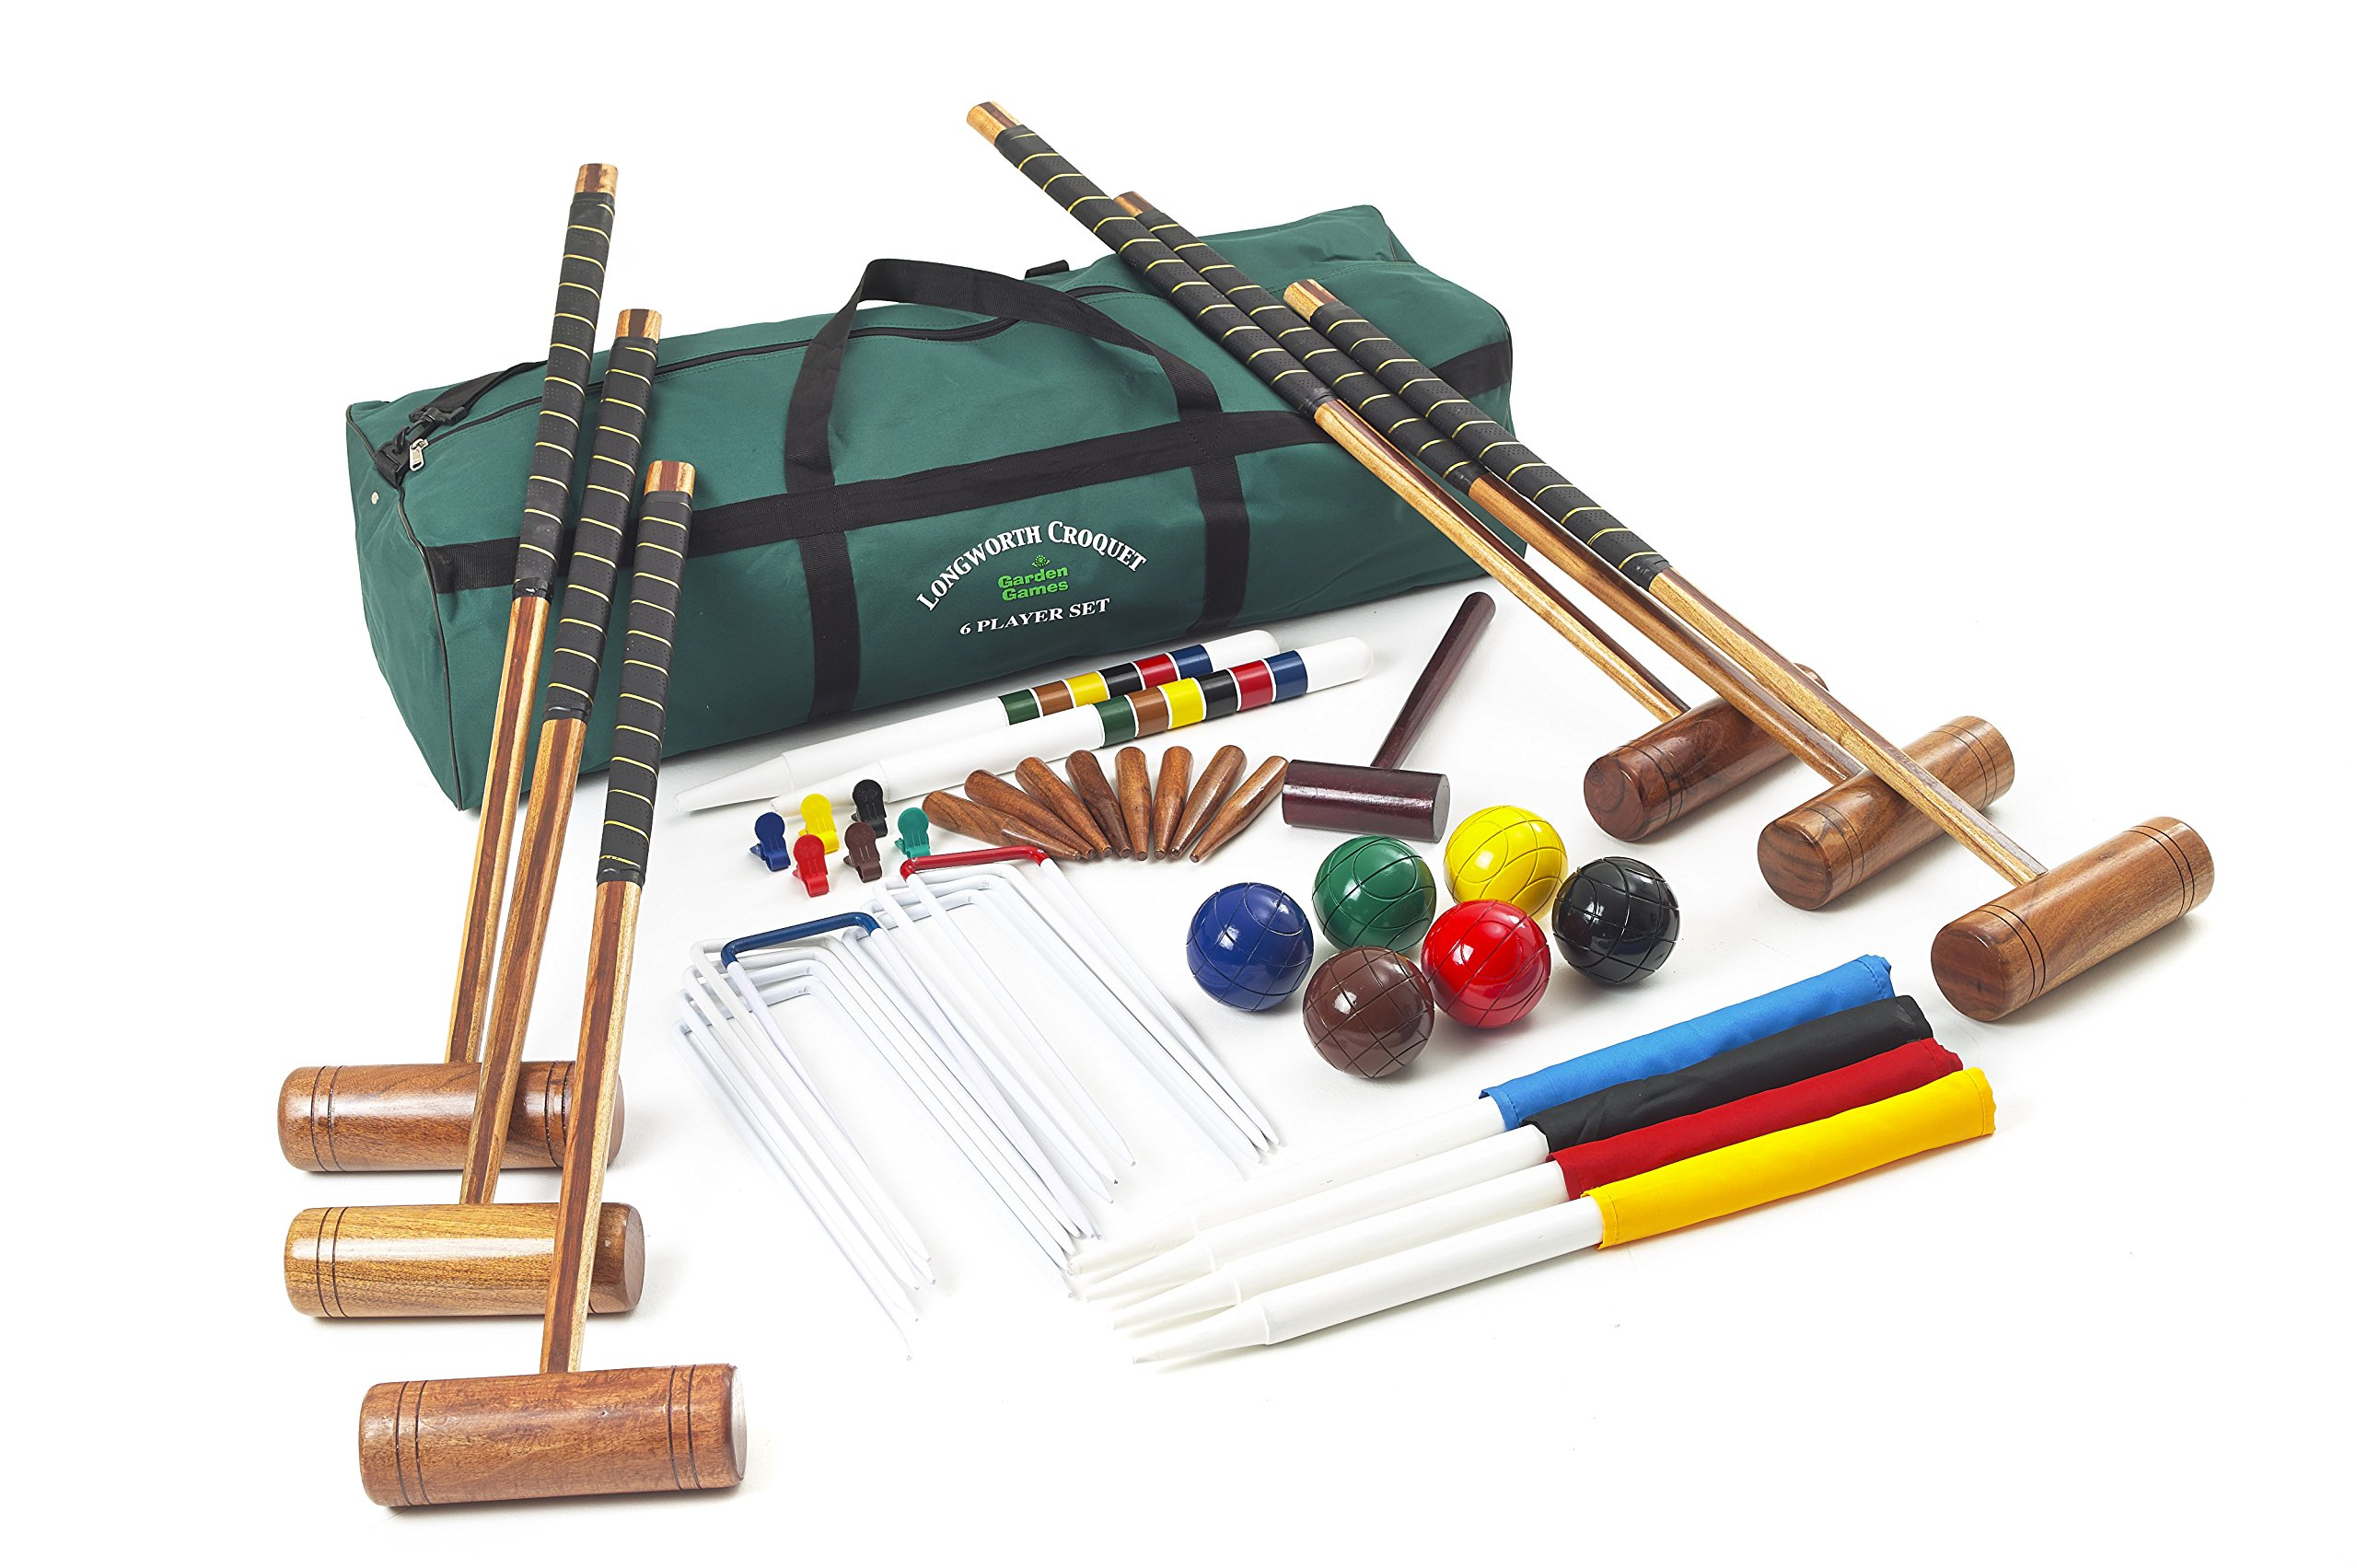 Longworth Croquet – 6 Player 9 Wicket Full Size Set by Garden Games